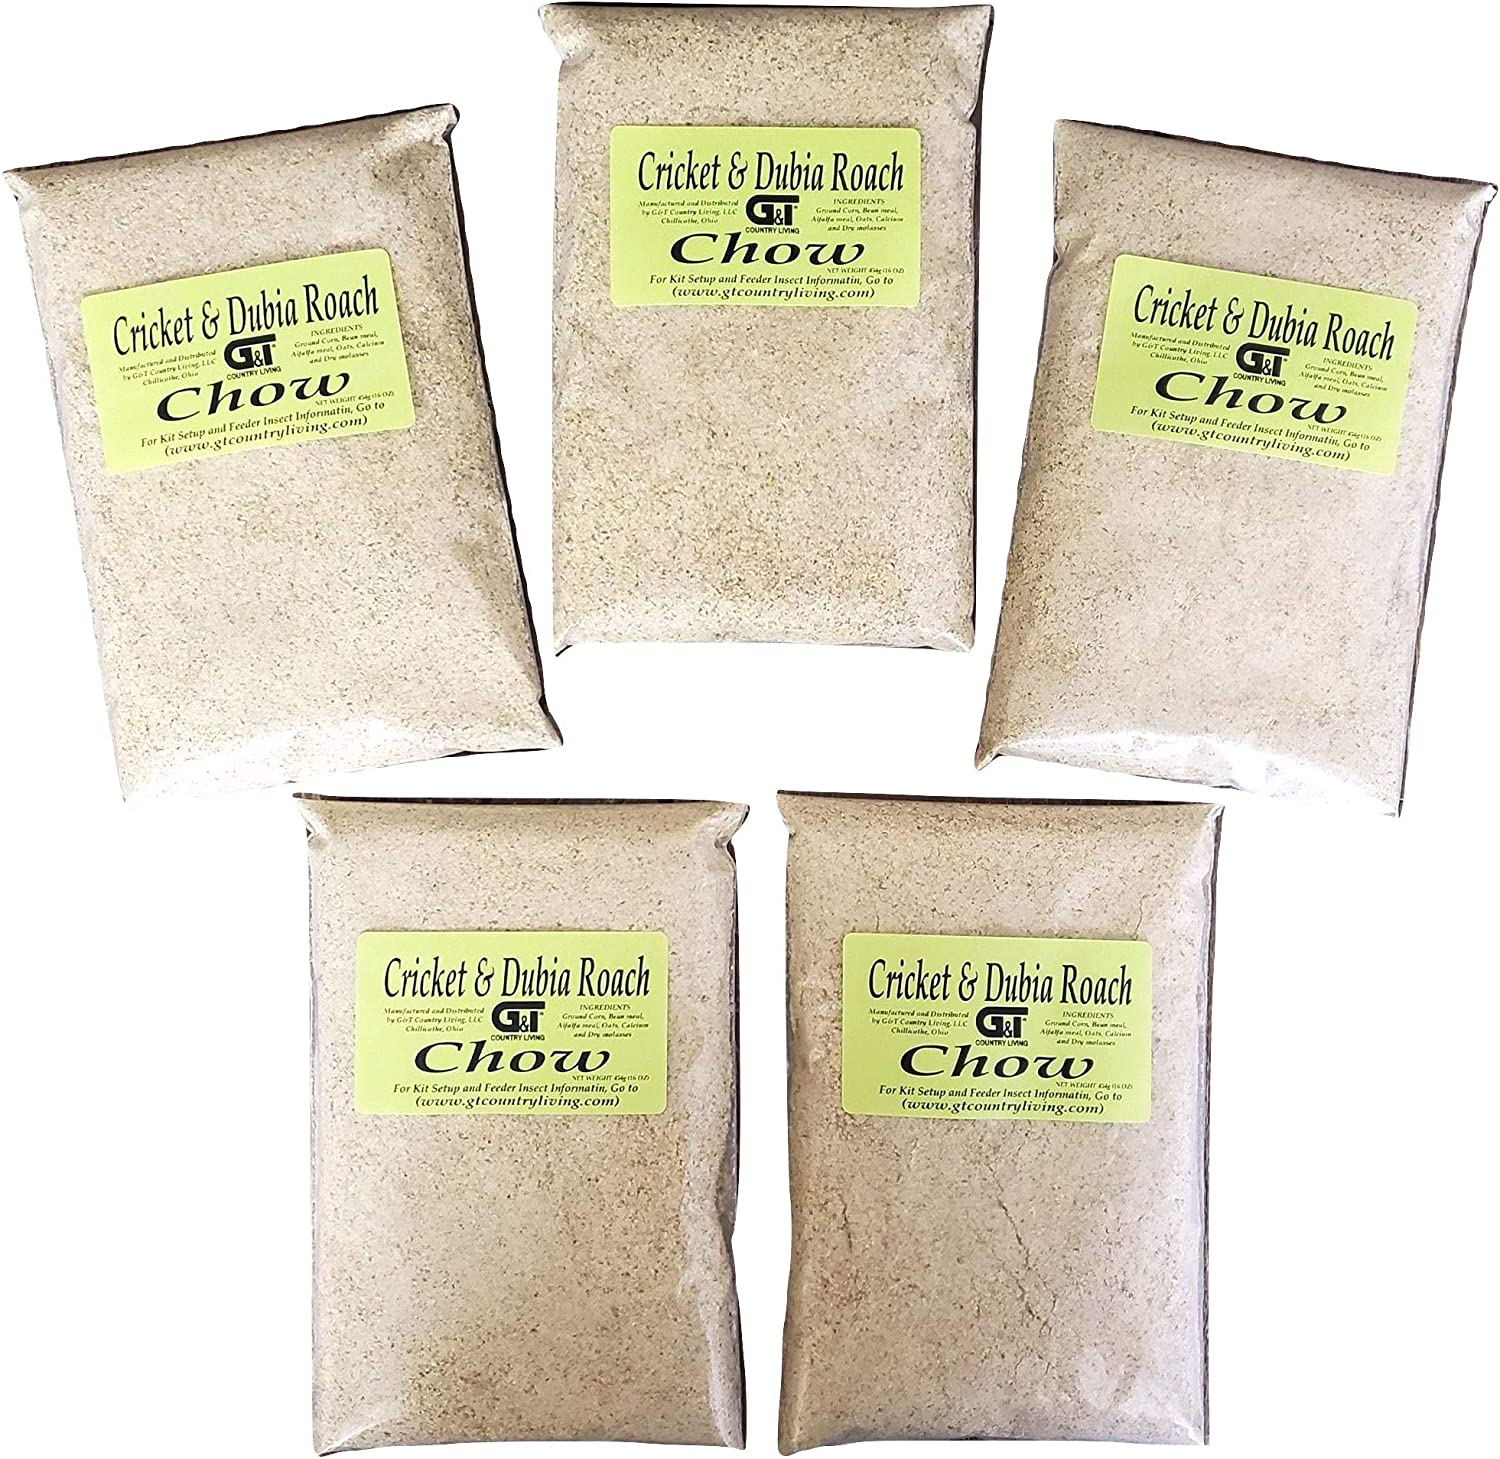 Cricket and Dubia Roach Chow (5 Lbs) - Premium Chow to Raise Your Feeder Crickets and Dubia Roaches